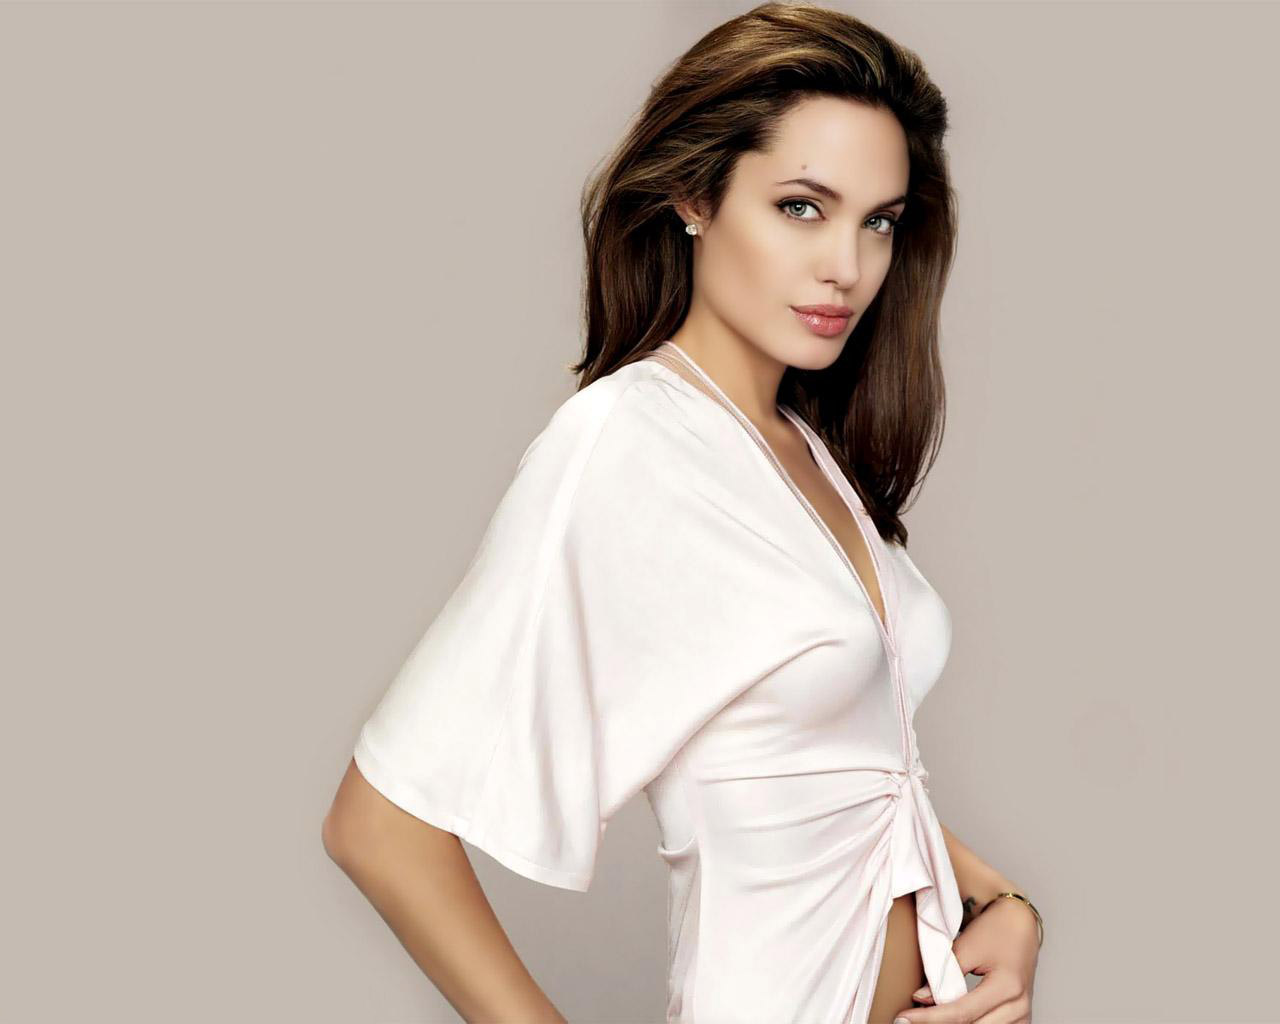 wallpaper hd angelina jolie